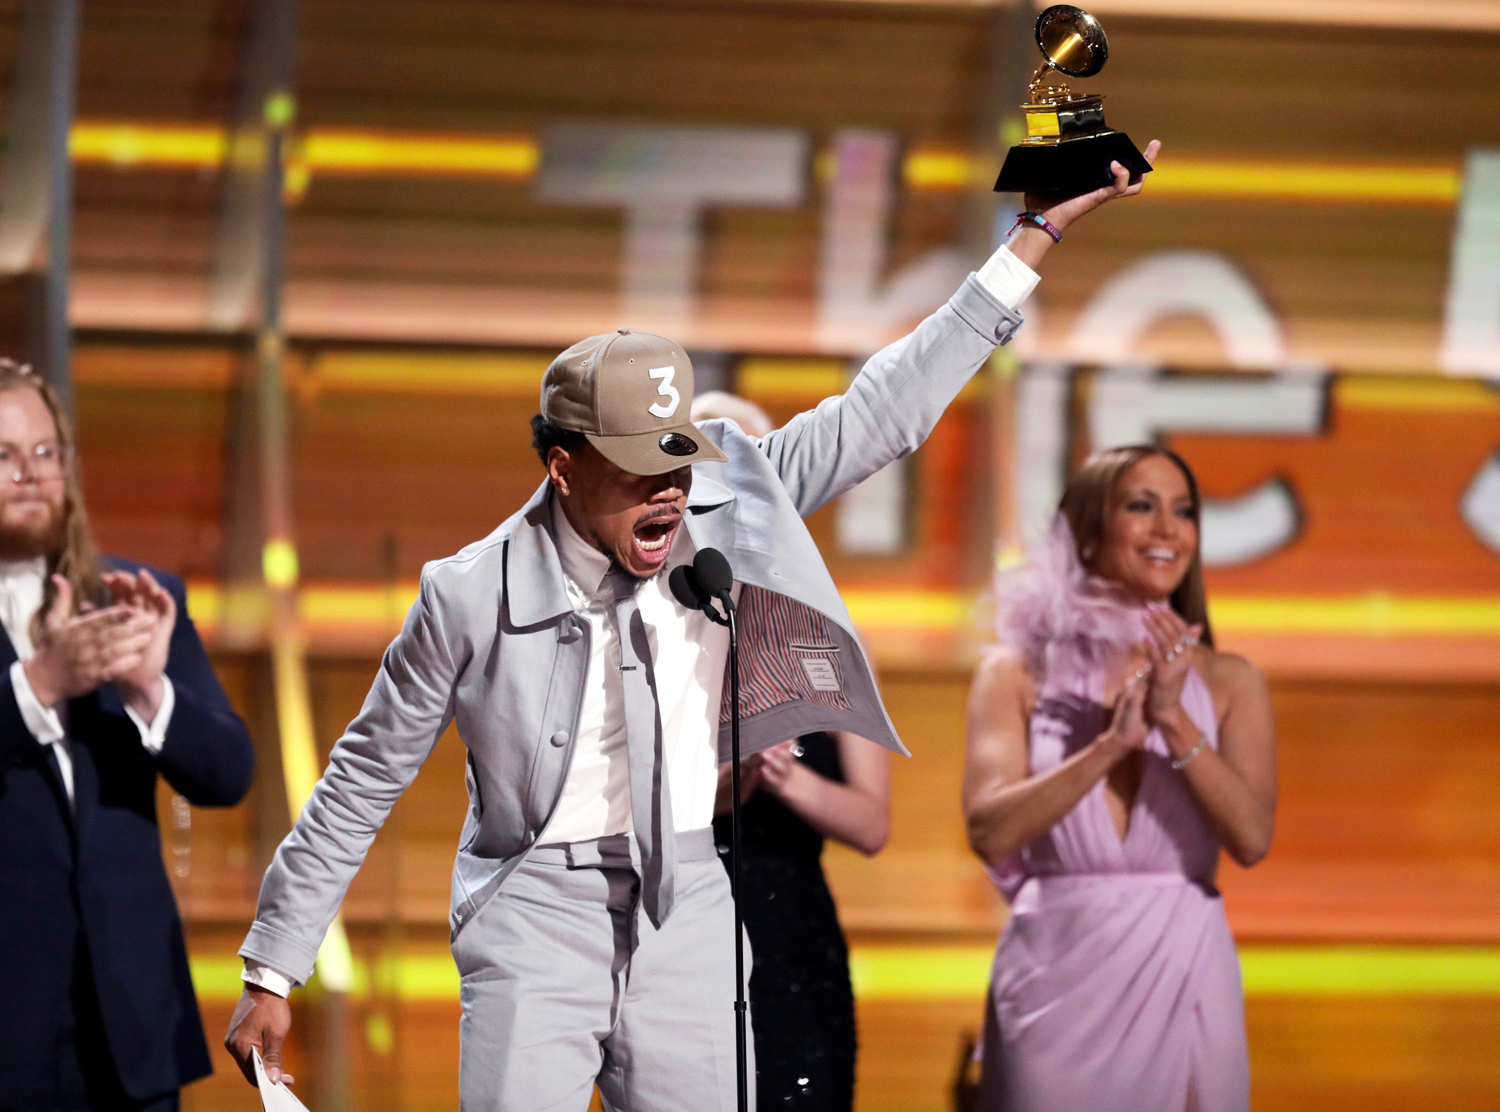 Grammys 2017: The Complete Winners List